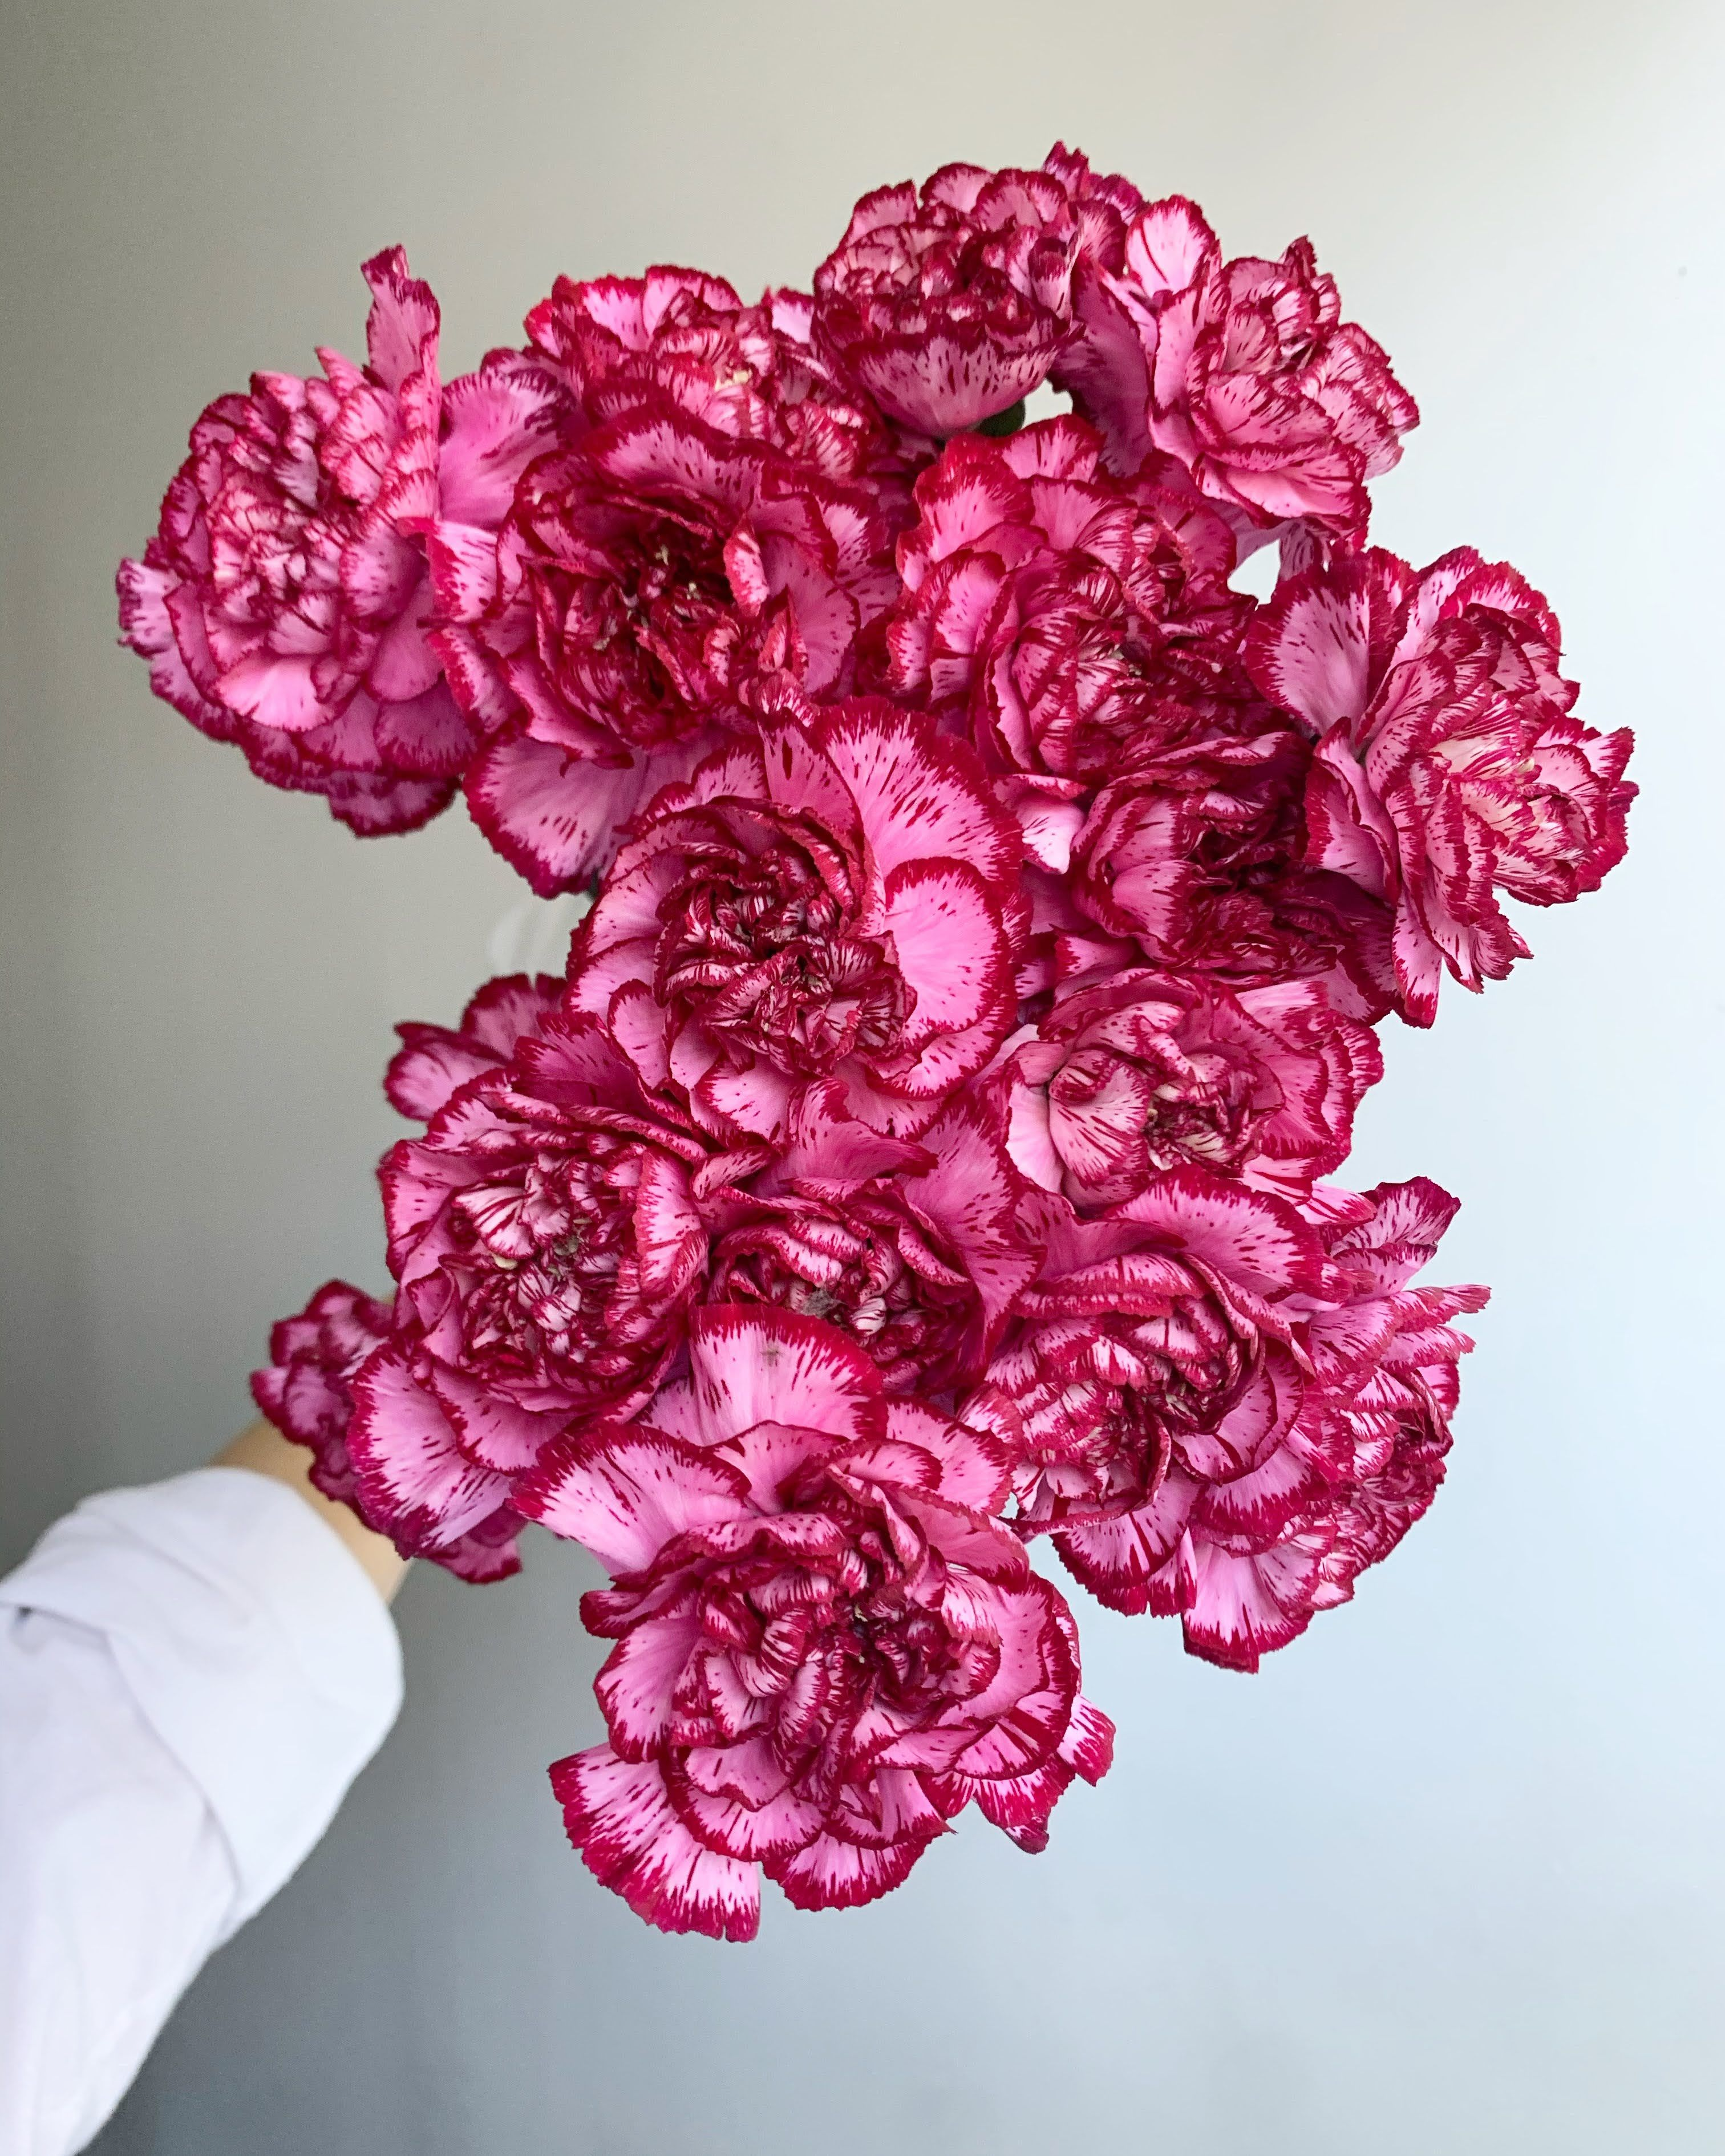 Purple Baccarat Carnations In 2021 Pink Flowers Carnations Floral